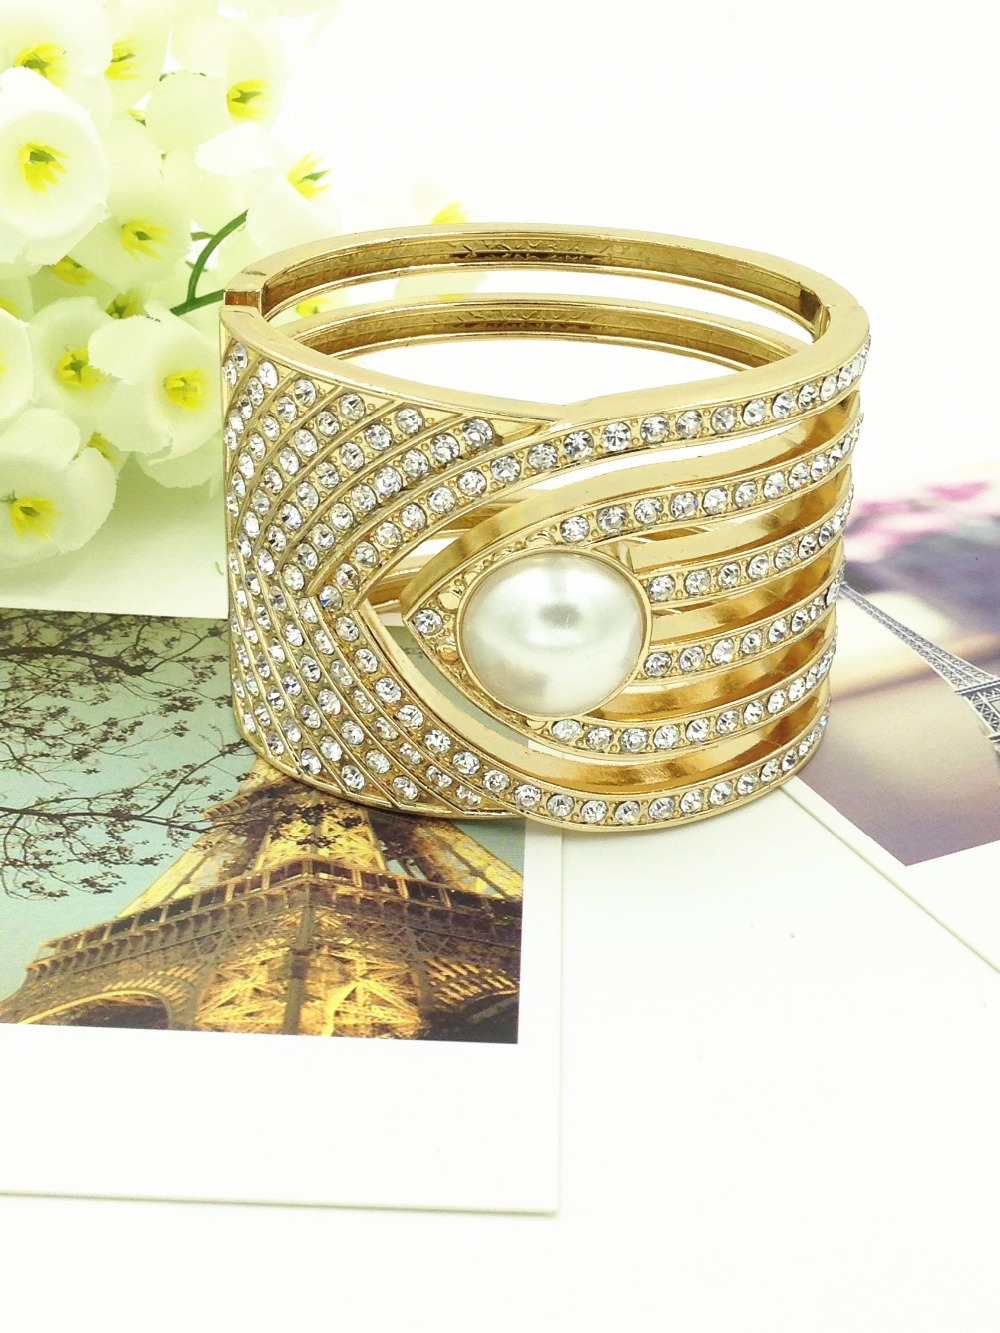 at plated studded youbella jewellery store gold women prices bangles online fashion bracelet buy low amazon india designed in girls dp bangle for crystal and